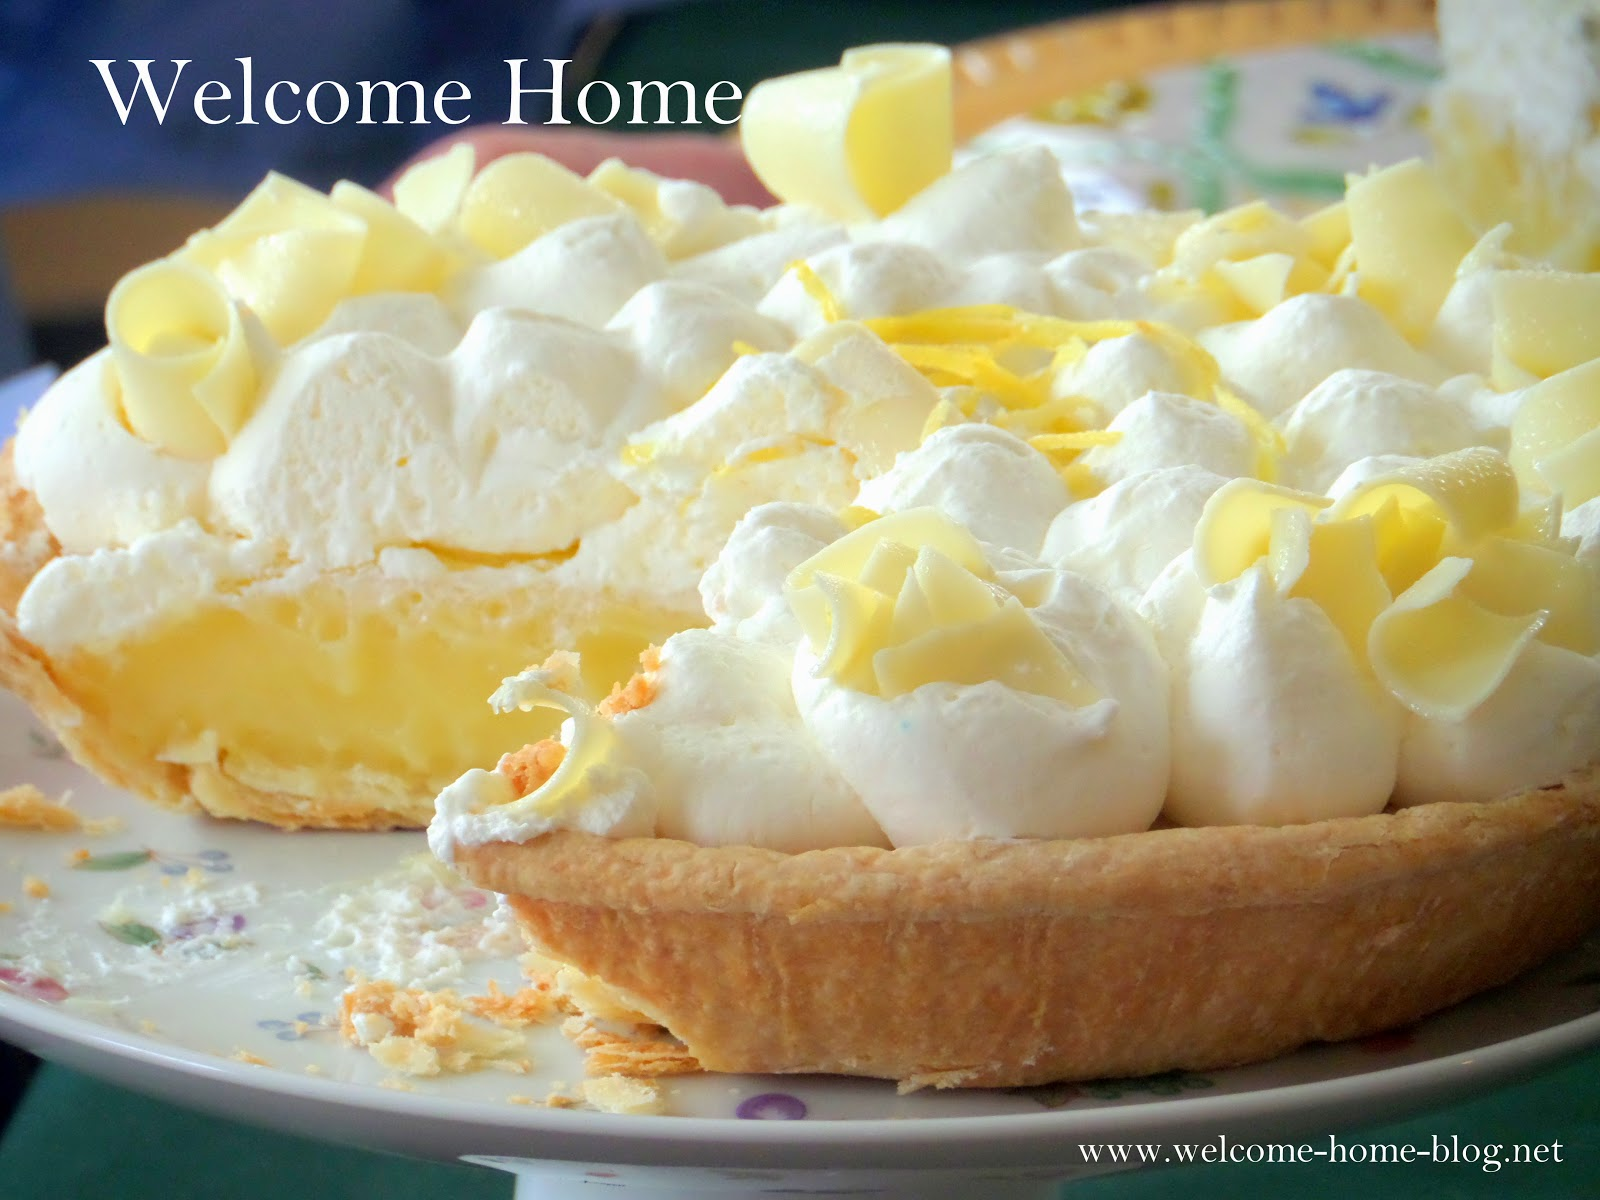 Welcome Home Blog: Lemon Cream Pie